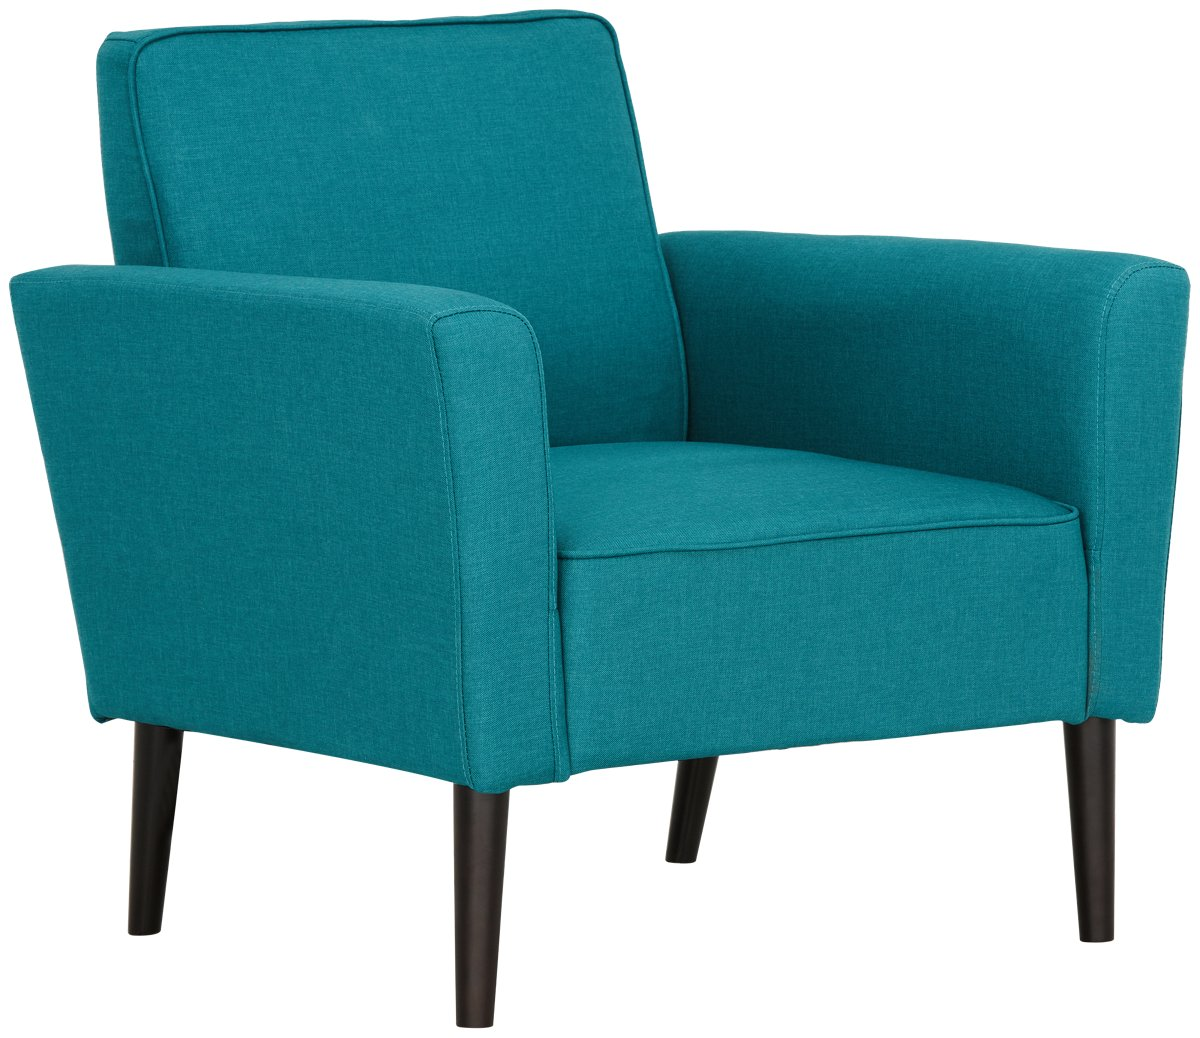 City Furniture Sage Teal Accent Chair